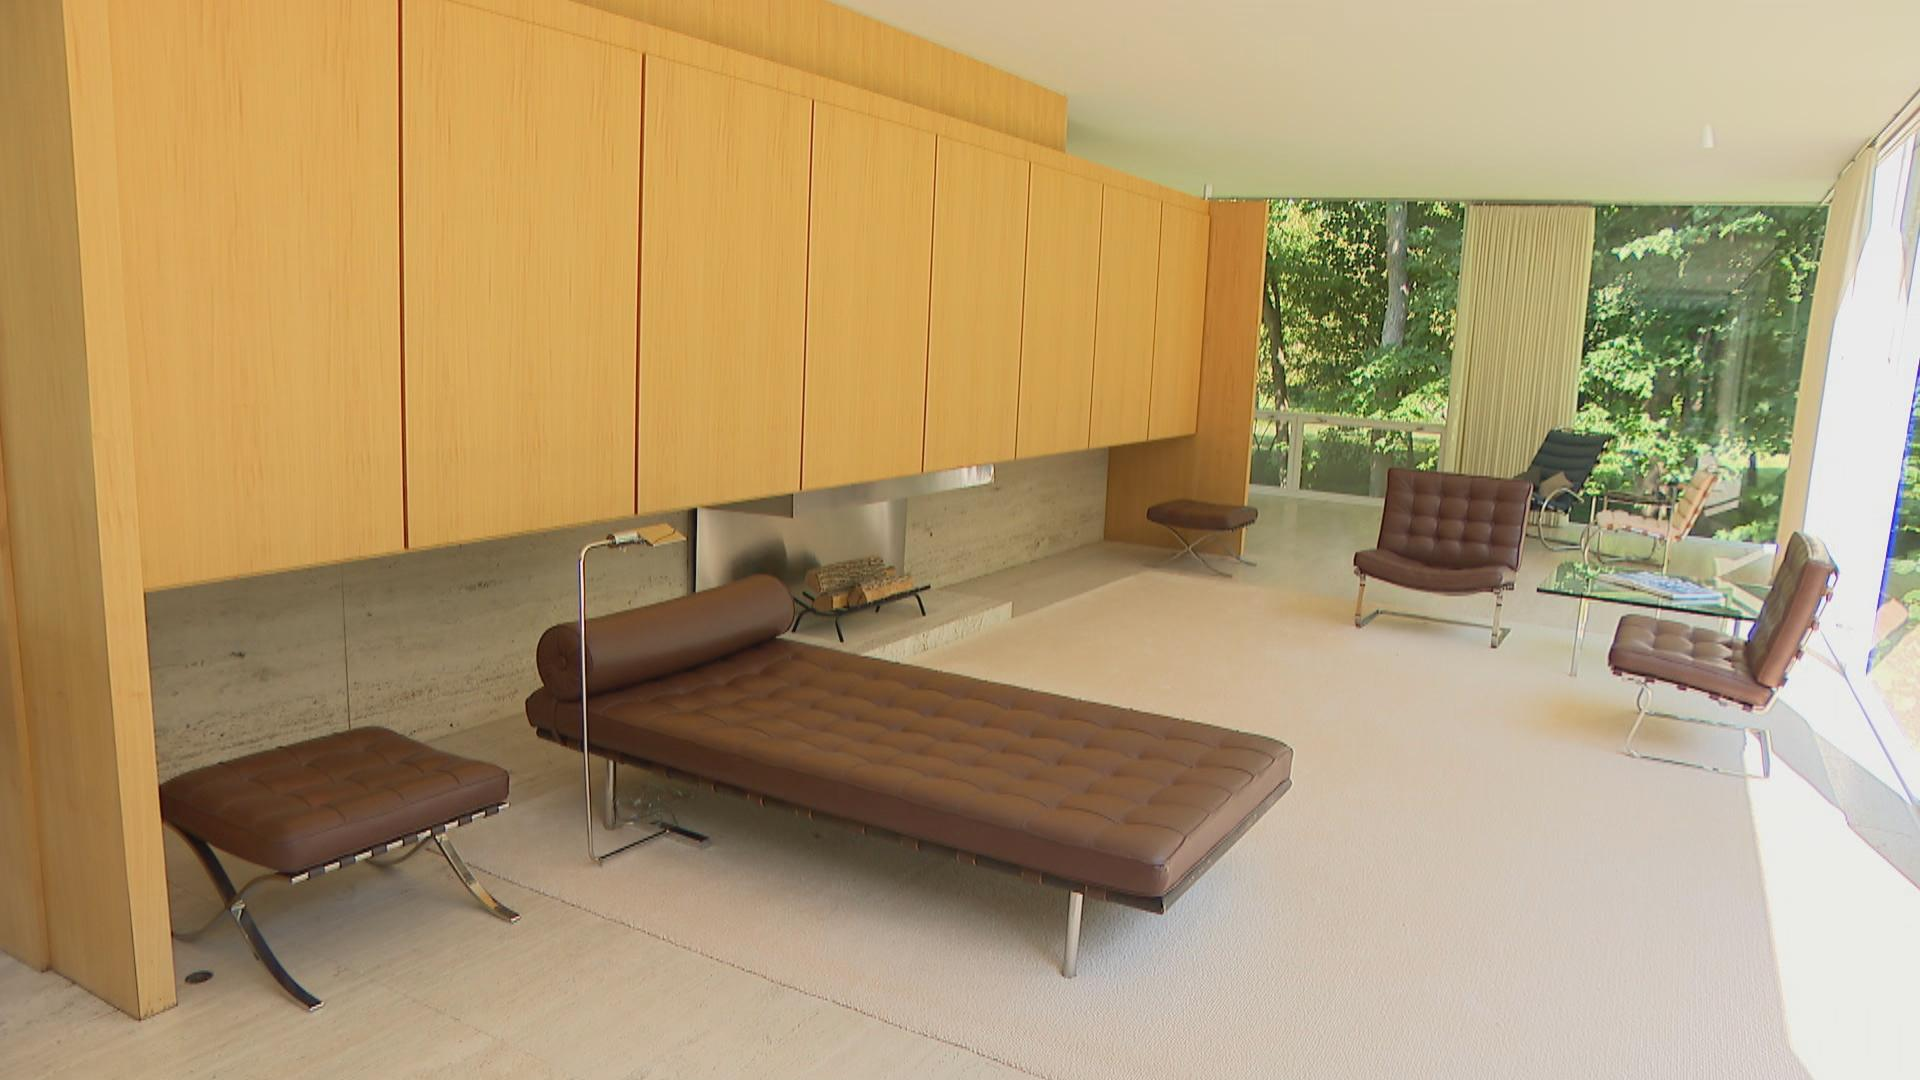 Revisiting Farnsworth House, a Masterpiece of Modern ... on